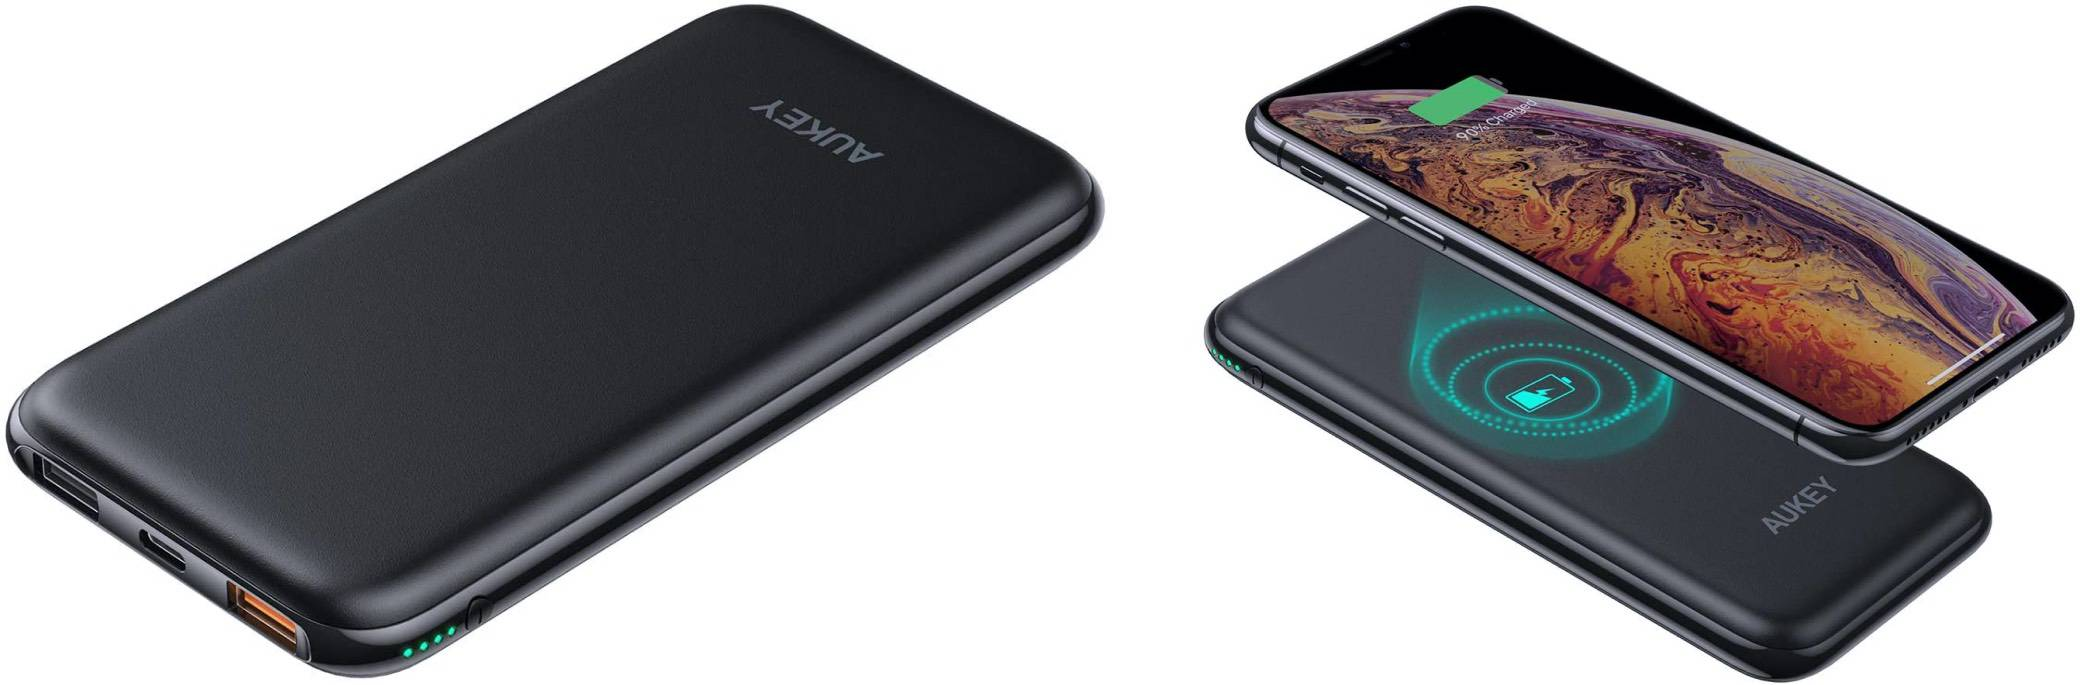 aukey-8,000mah-power-bank screenshot